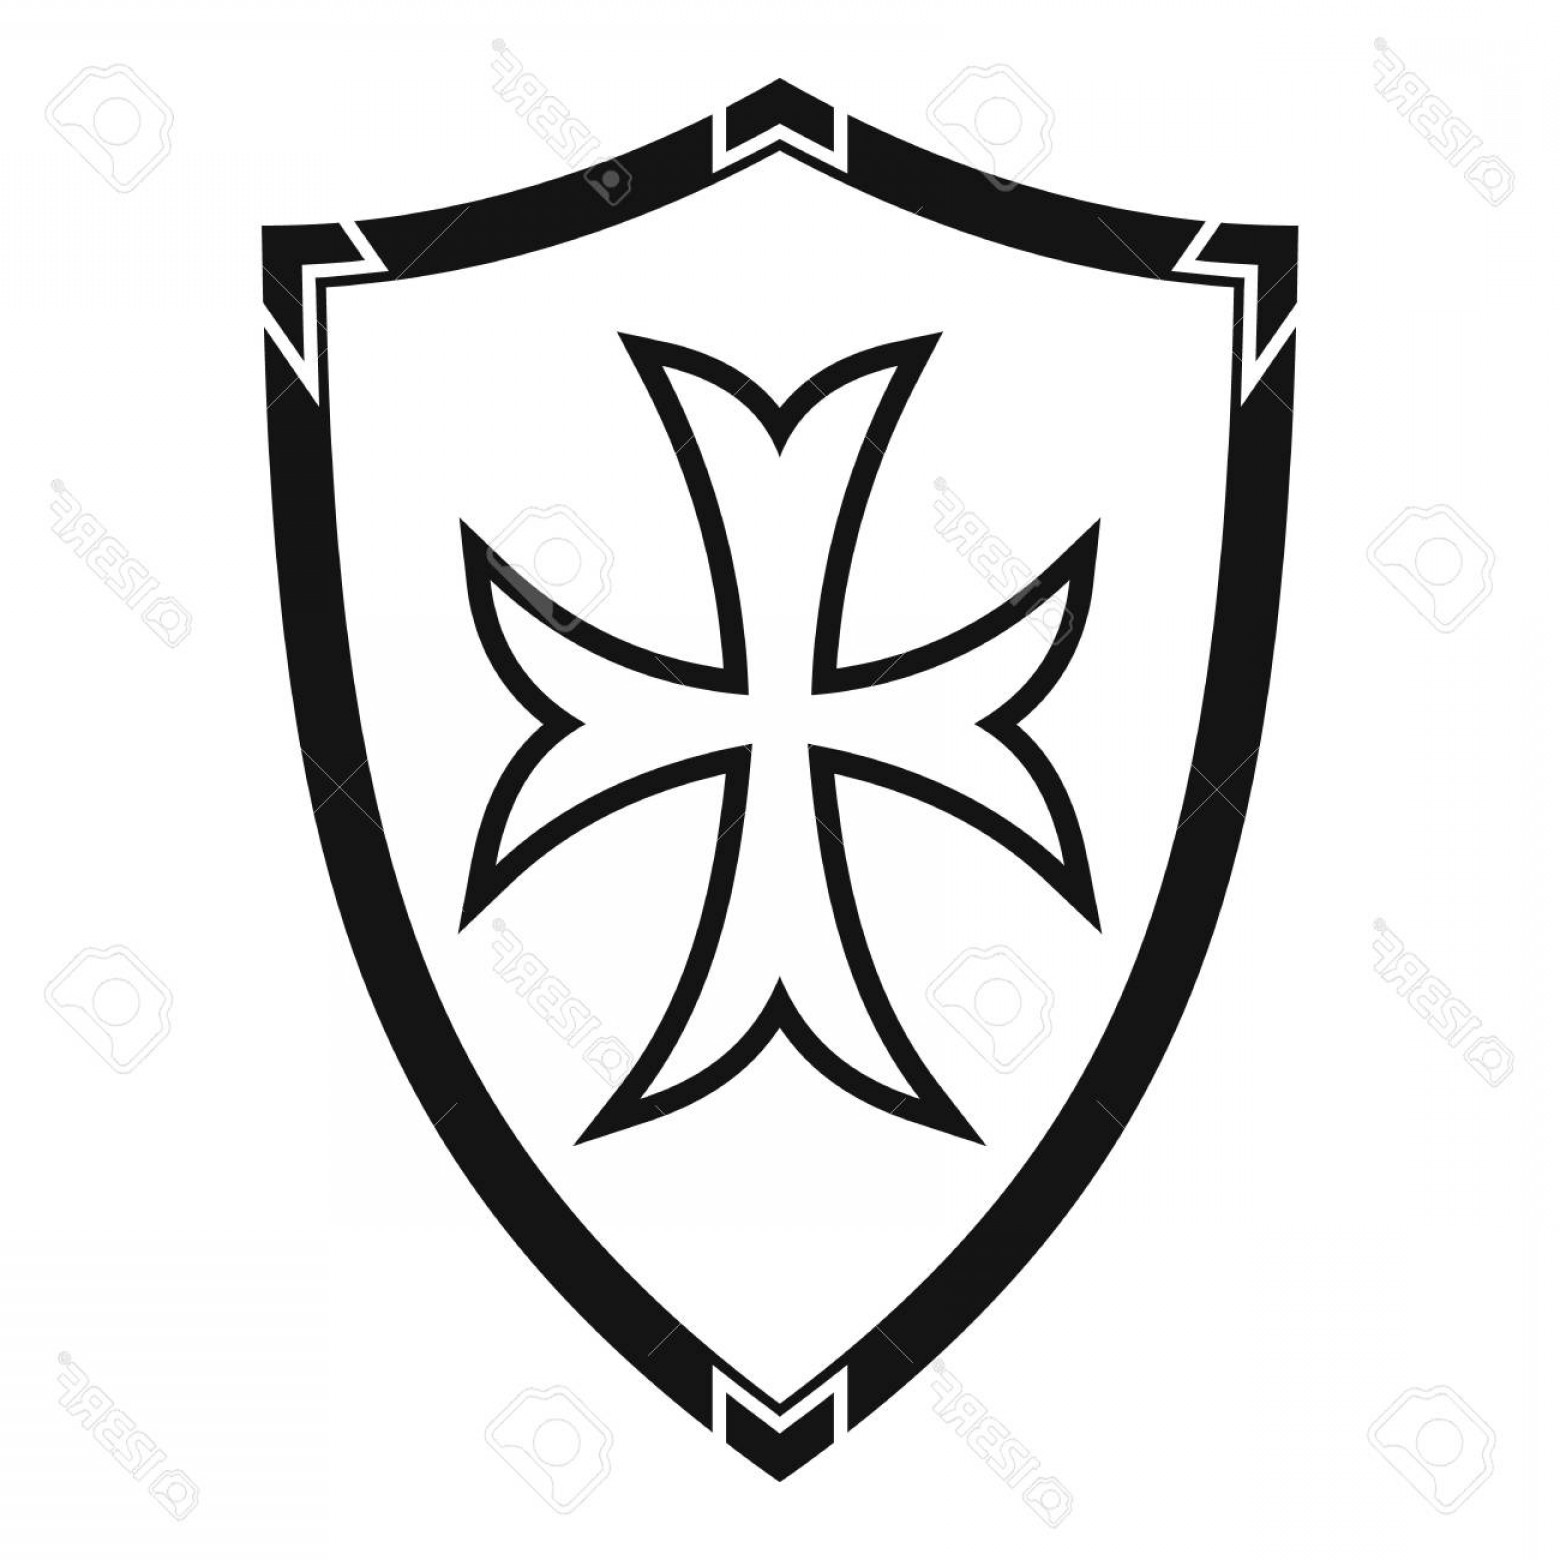 White Shield Vector: Photostock Vector Protective Shield Icon Simple Illustration Of Protective Shield Vector Icon For Web